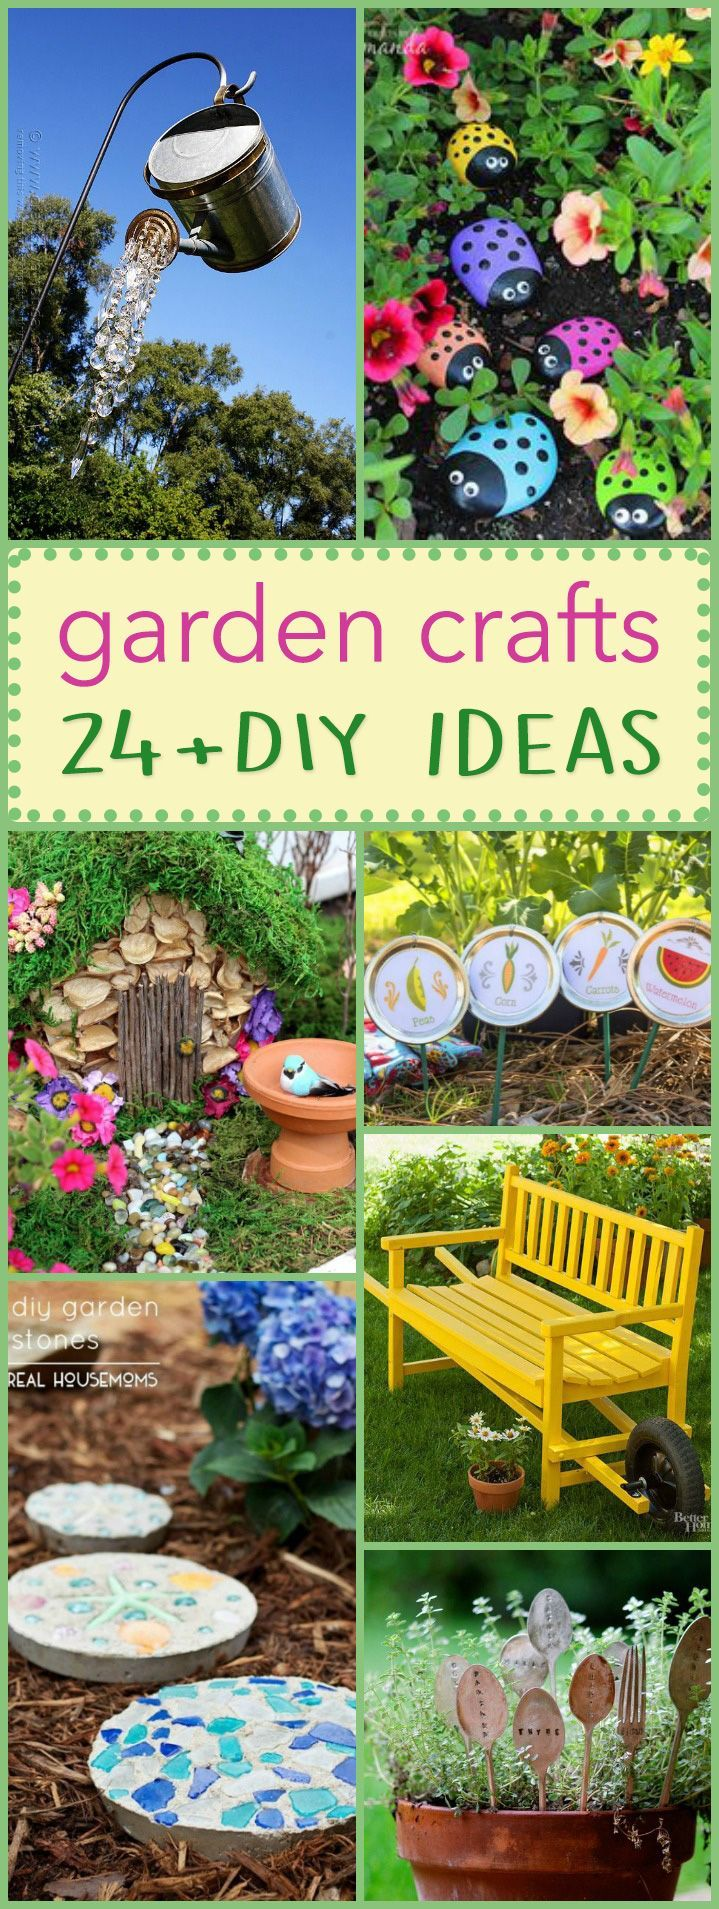 Seductive  Best Ideas About Recycled Garden Crafts On Pinterest  Outdoor  With Fascinating Diy Garden Crafts  Beautiful Garden Crafts For Every Age With Endearing Ponds Garden Also Art Deco Garden In Addition The Vintage Garden Store And Cottage Garden Cattery As Well As Lee Garden Menu Dunfermline Additionally Tiny Gardens From Pinterestcom With   Fascinating  Best Ideas About Recycled Garden Crafts On Pinterest  Outdoor  With Endearing Diy Garden Crafts  Beautiful Garden Crafts For Every Age And Seductive Ponds Garden Also Art Deco Garden In Addition The Vintage Garden Store From Pinterestcom